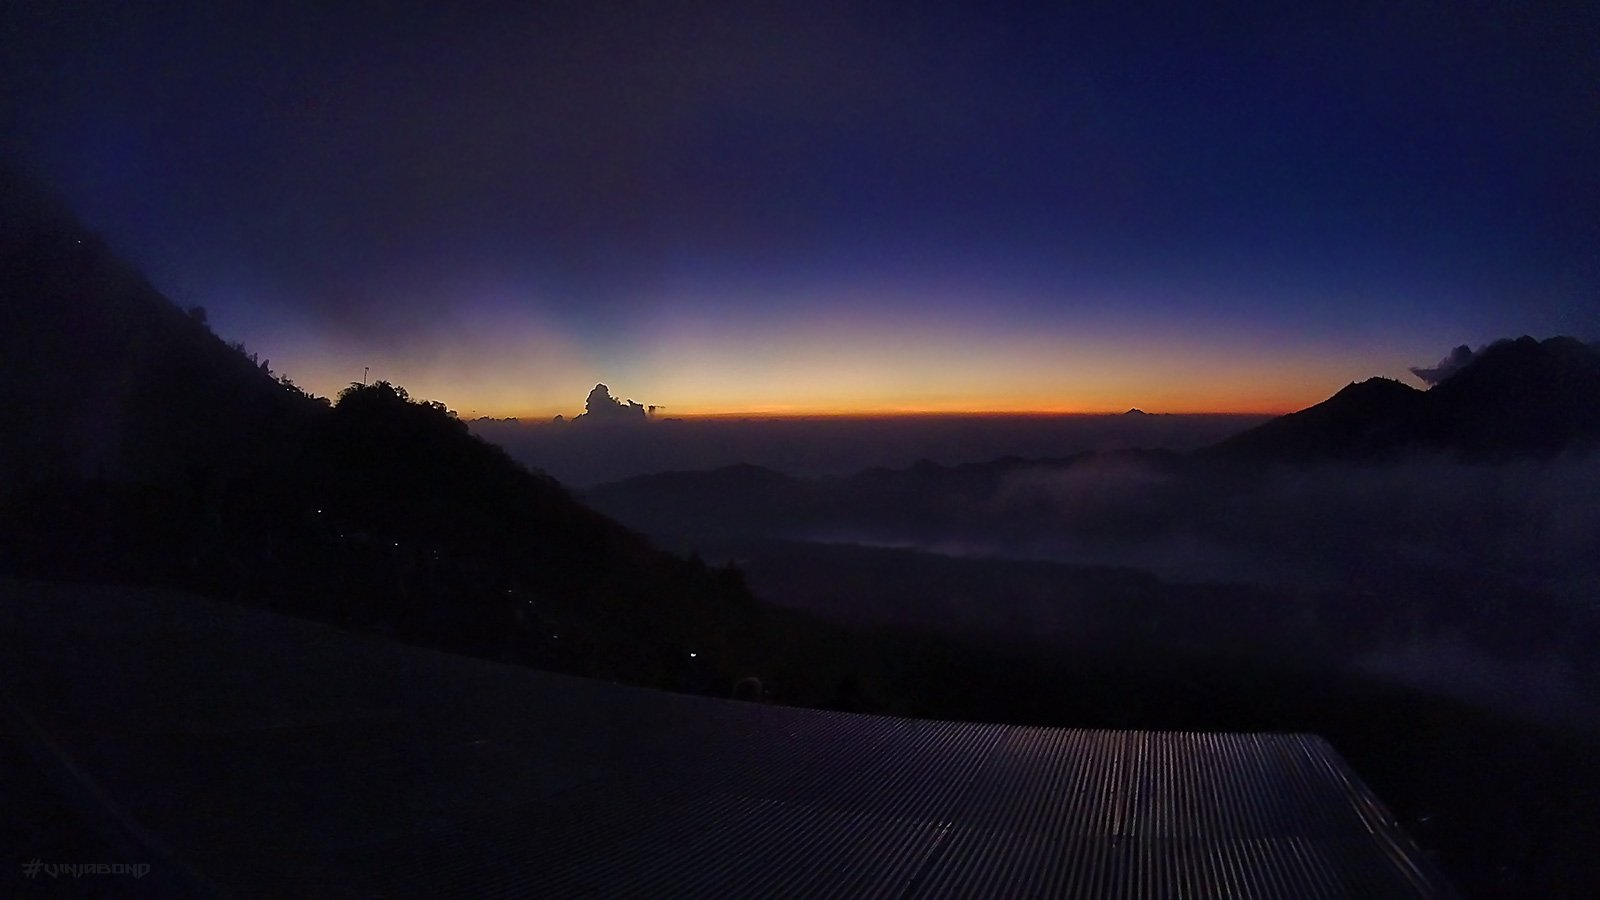 Peak of Mount Bature, Seconds Before Sunrise /// Vinjabond